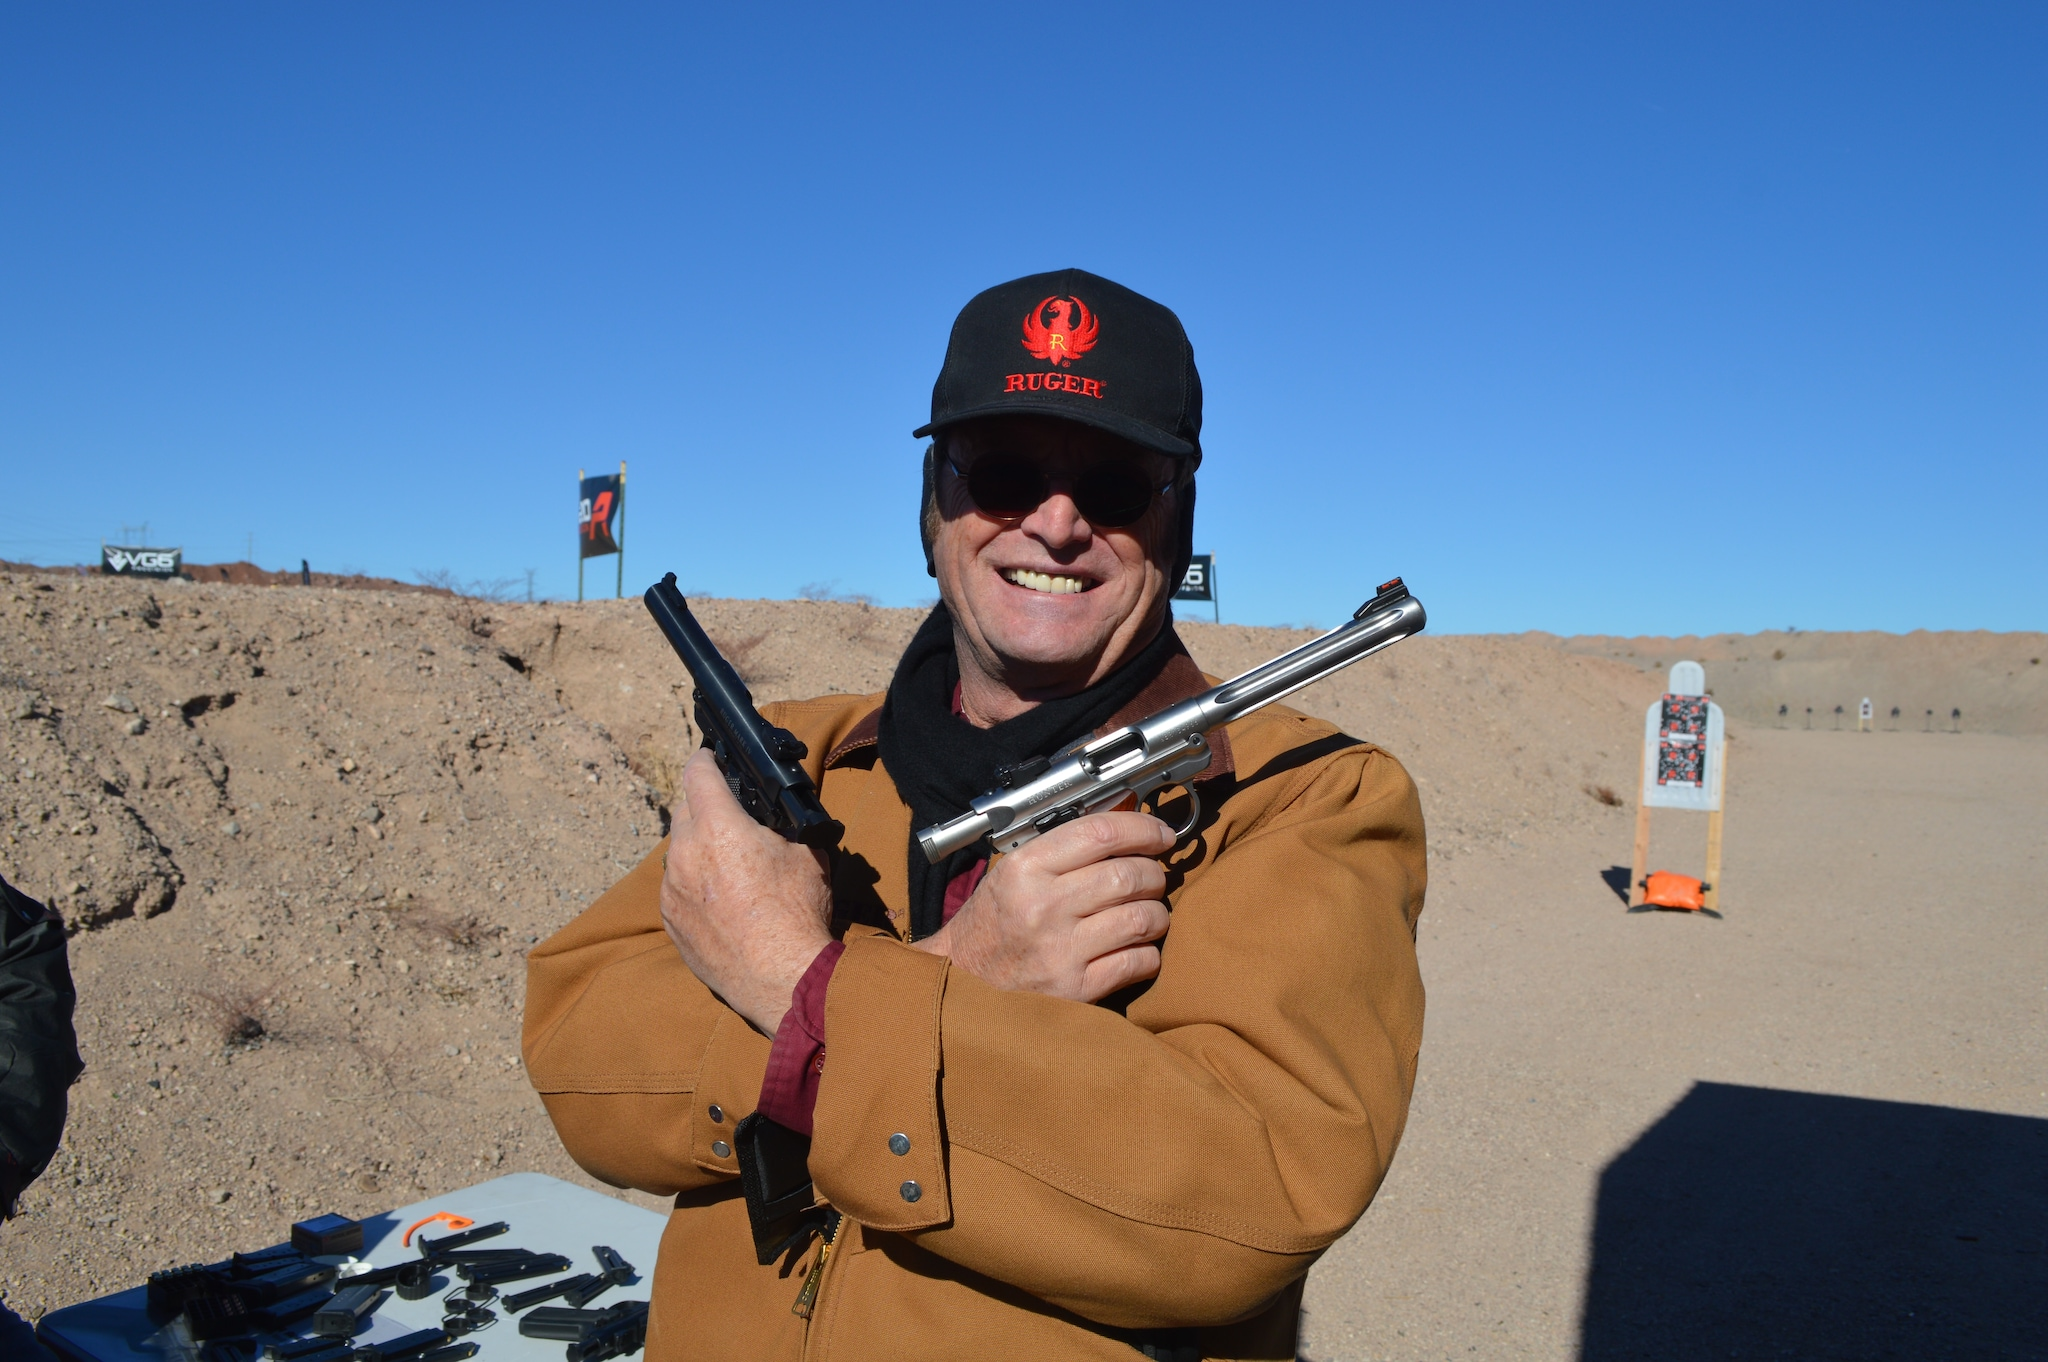 Dave Anderson, designer and mastermind behind Ruger's new Mark IV pistols, shows off a pair of his favorite models. (Photo: Kristin Alberts)